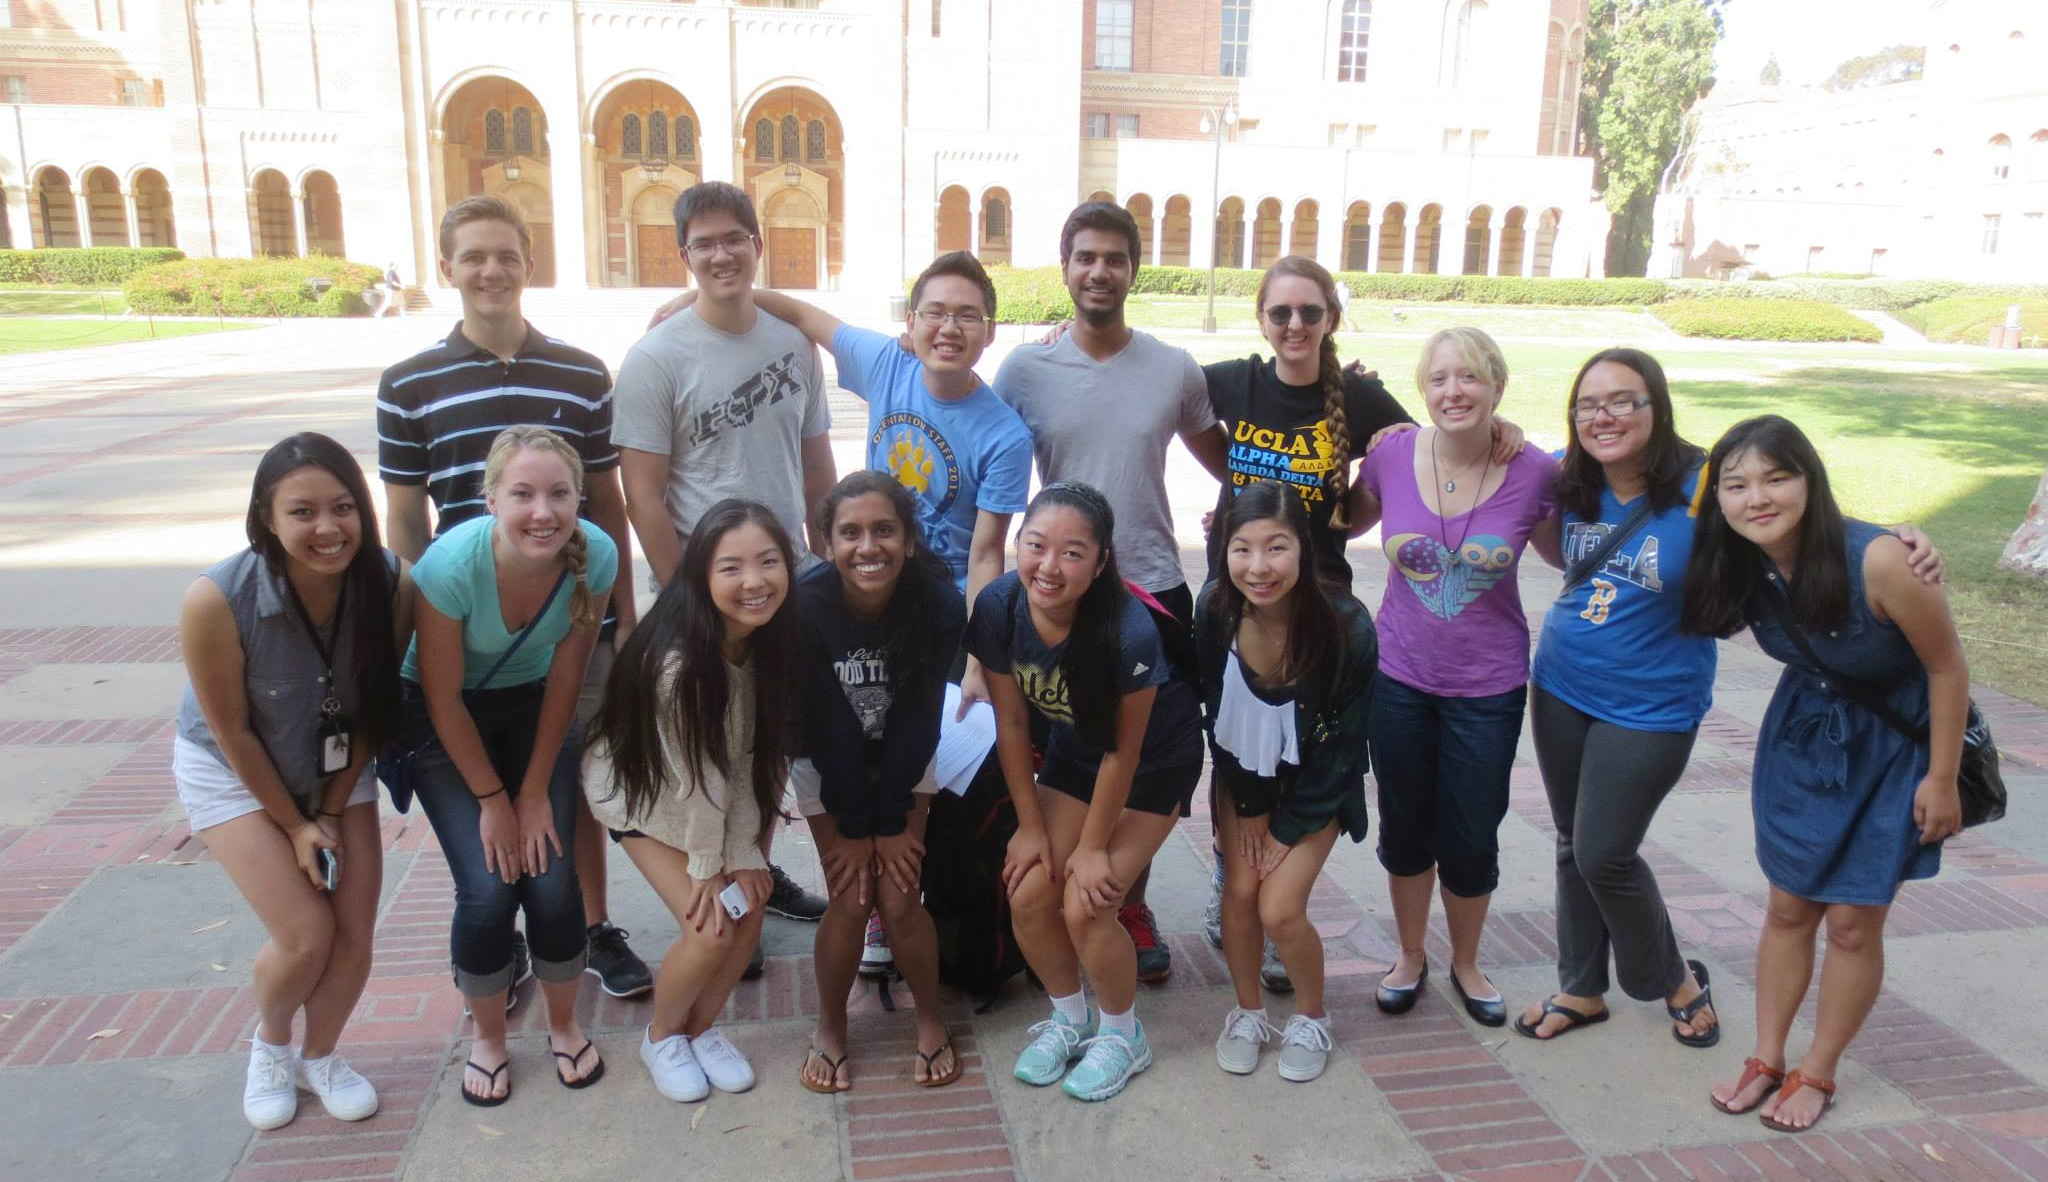 university of california - los angeles members getting ready for a scavenger hunt